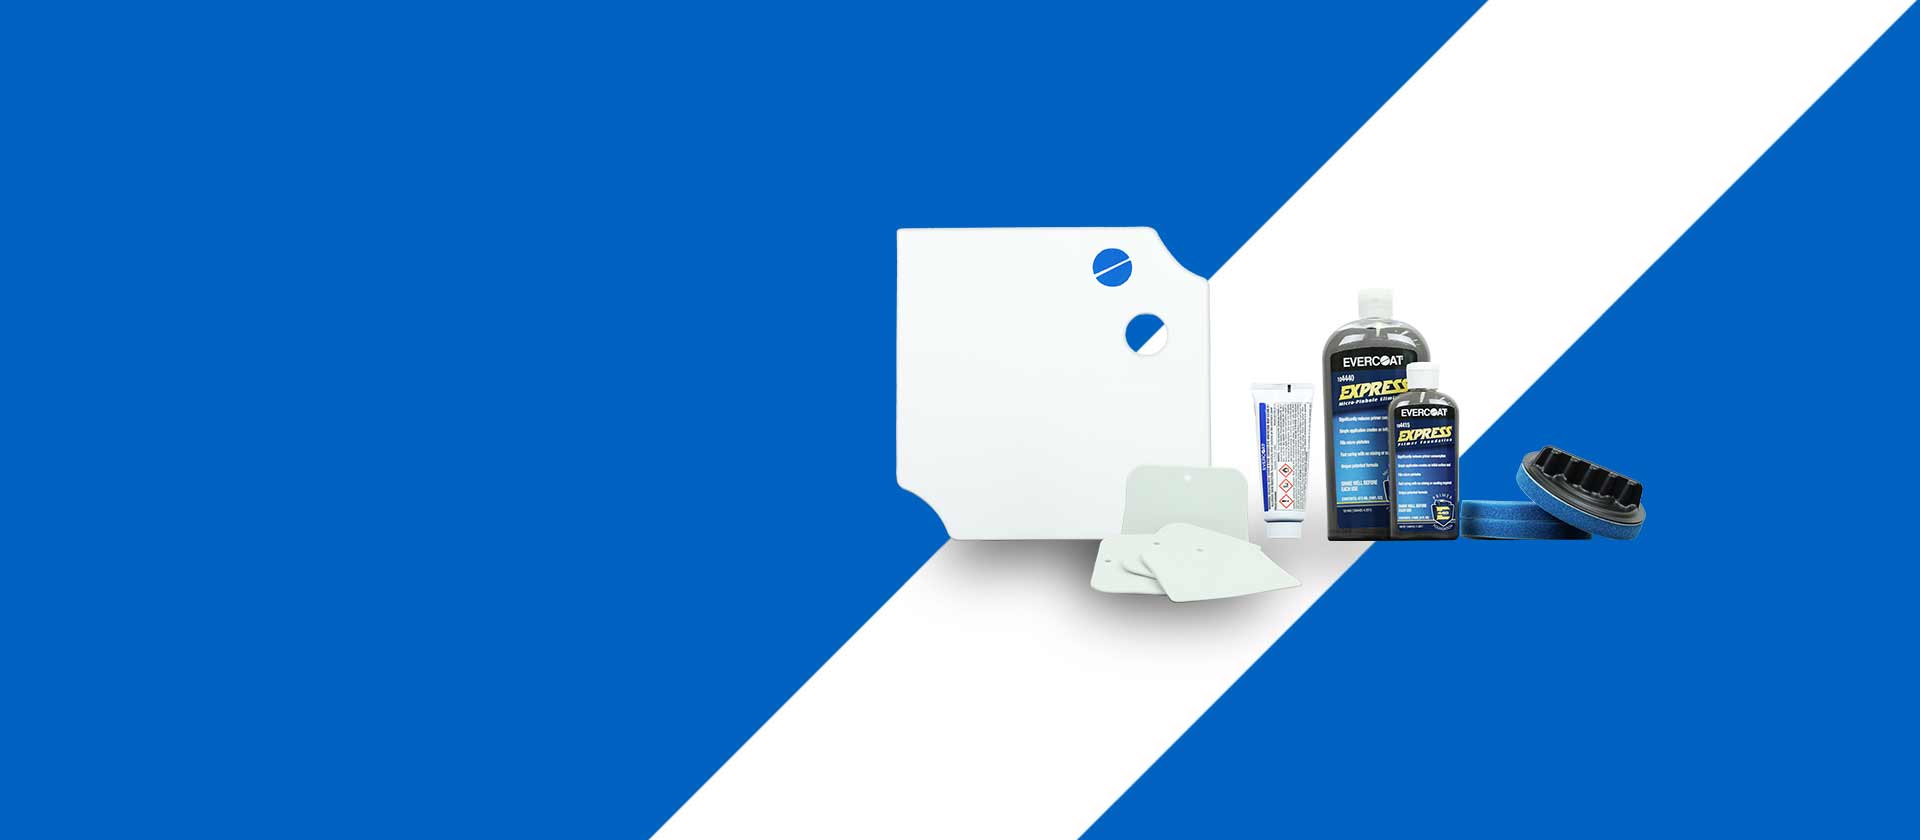 EVERCOAT's Specialized Products